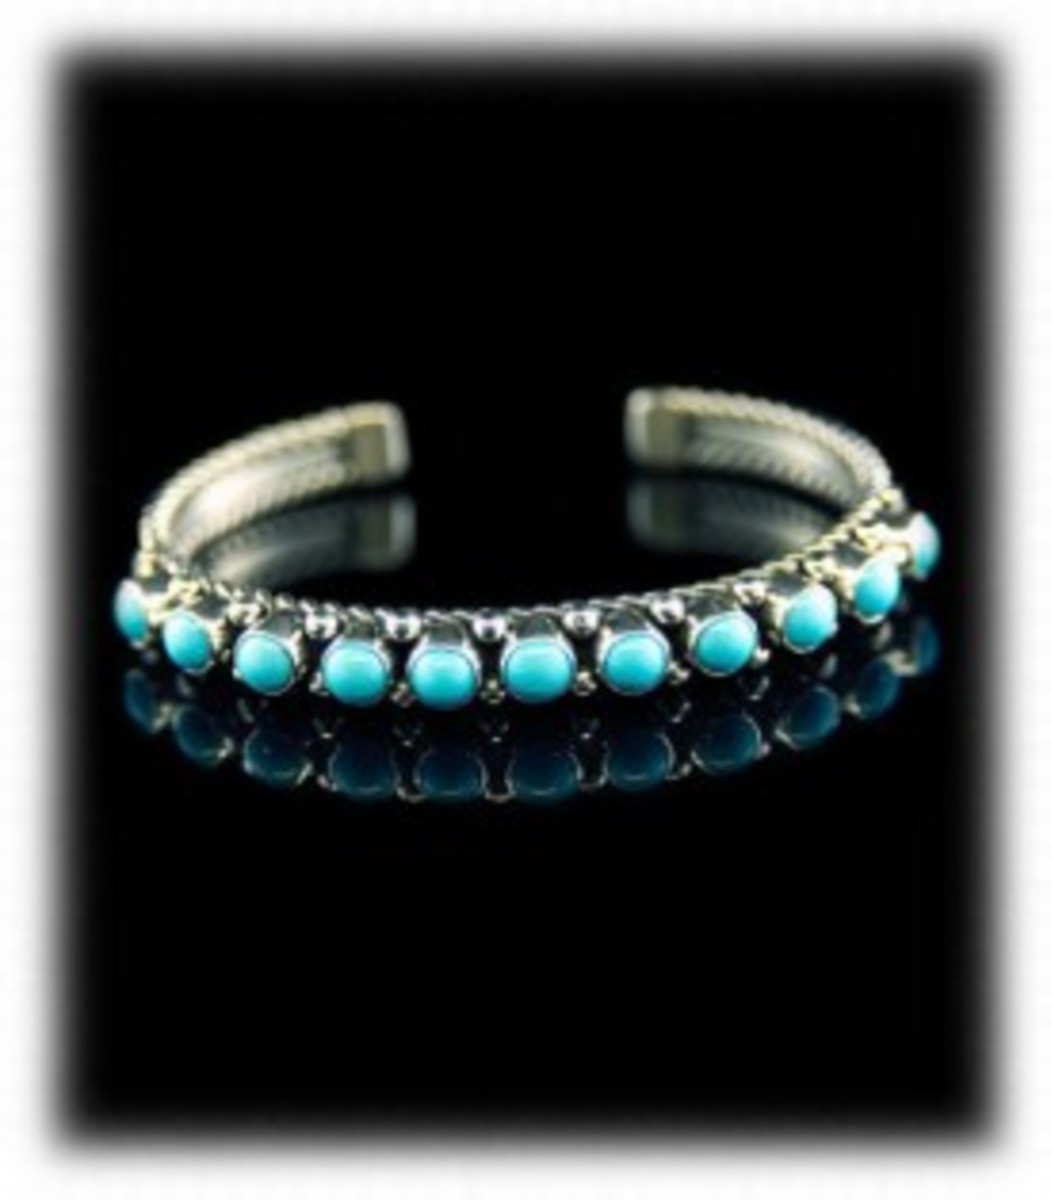 Navajo Turquoise Row Bracelet.  Turquoise from Sleeping Beauty mine in Arizona. (Mine closed in 2012)  Very classic bracelet made for decades.